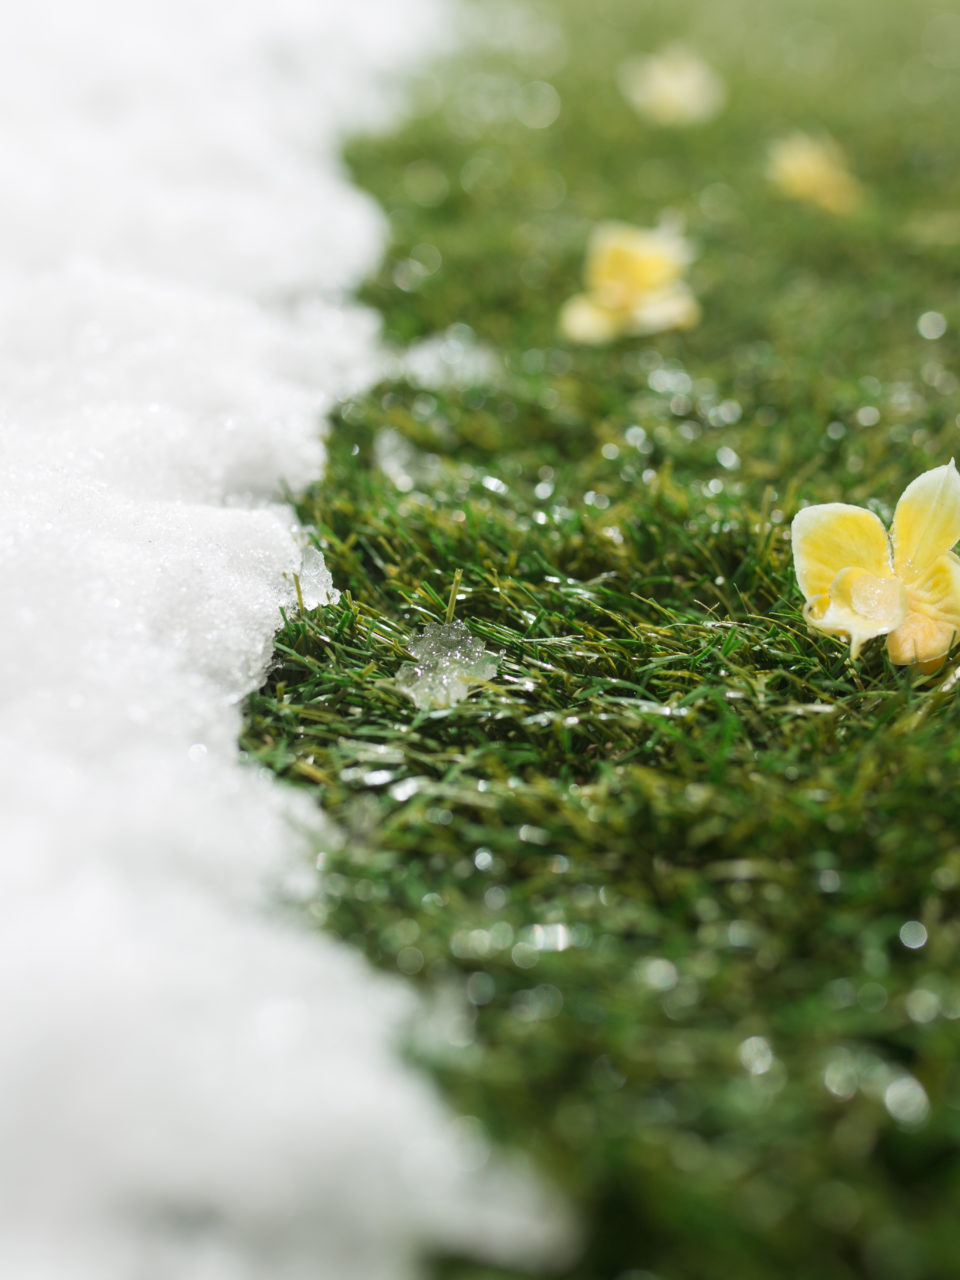 https://www.planetavenue.com/wp-content/uploads/2020/03/meeting-snow-on-green-grass-close-up-between-P9SQMDC-960x1280.jpg